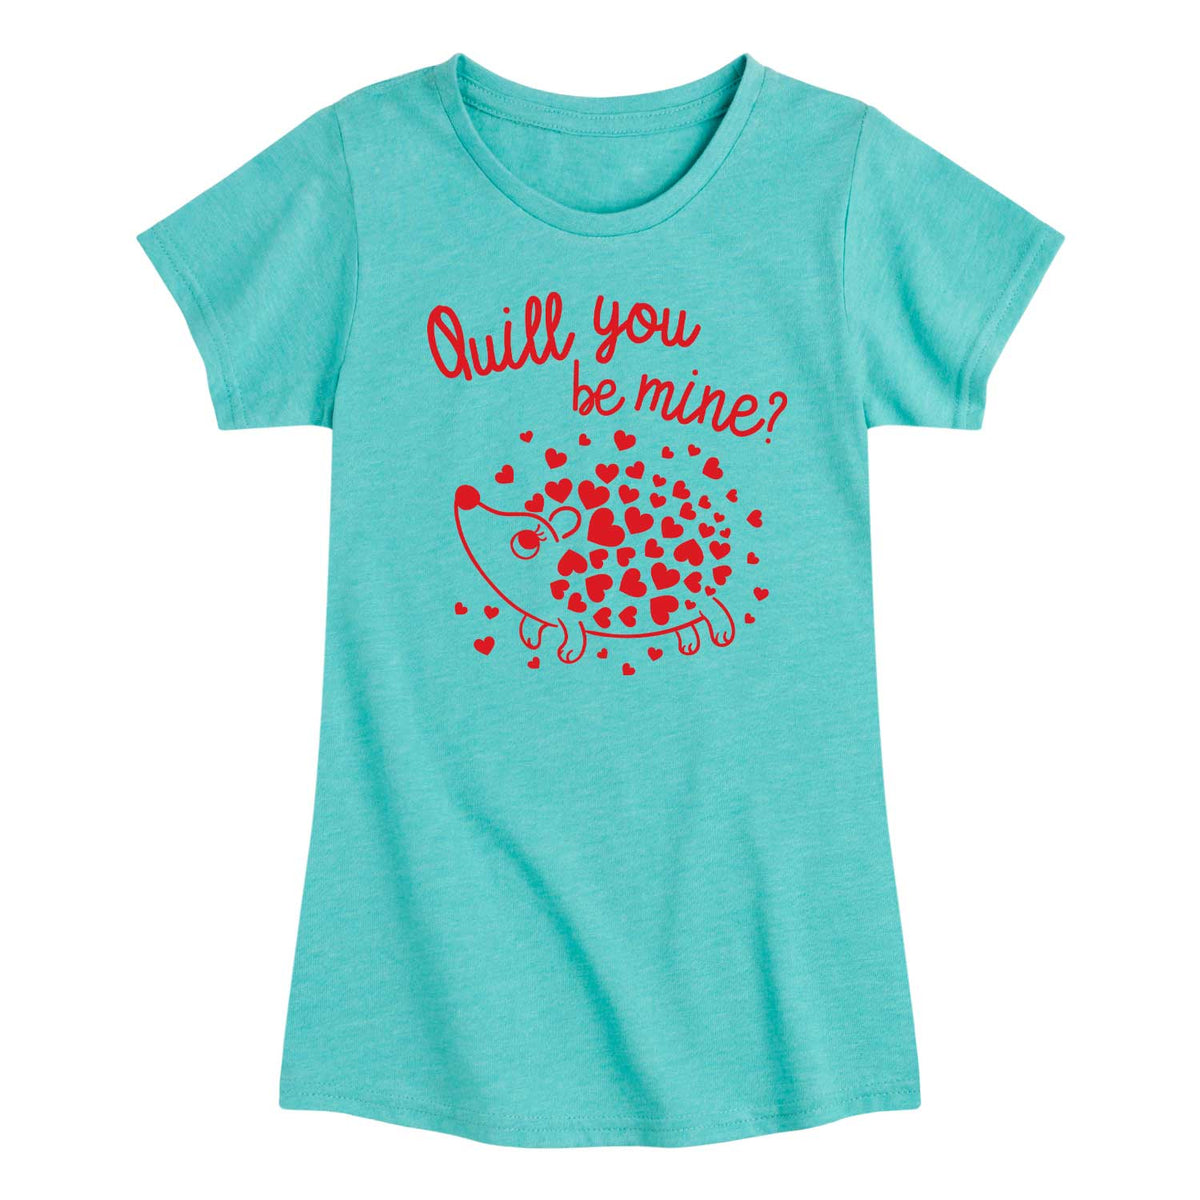 Quill You Be Mine - Youth & Toddler Girls Short Sleeve T-Shirt